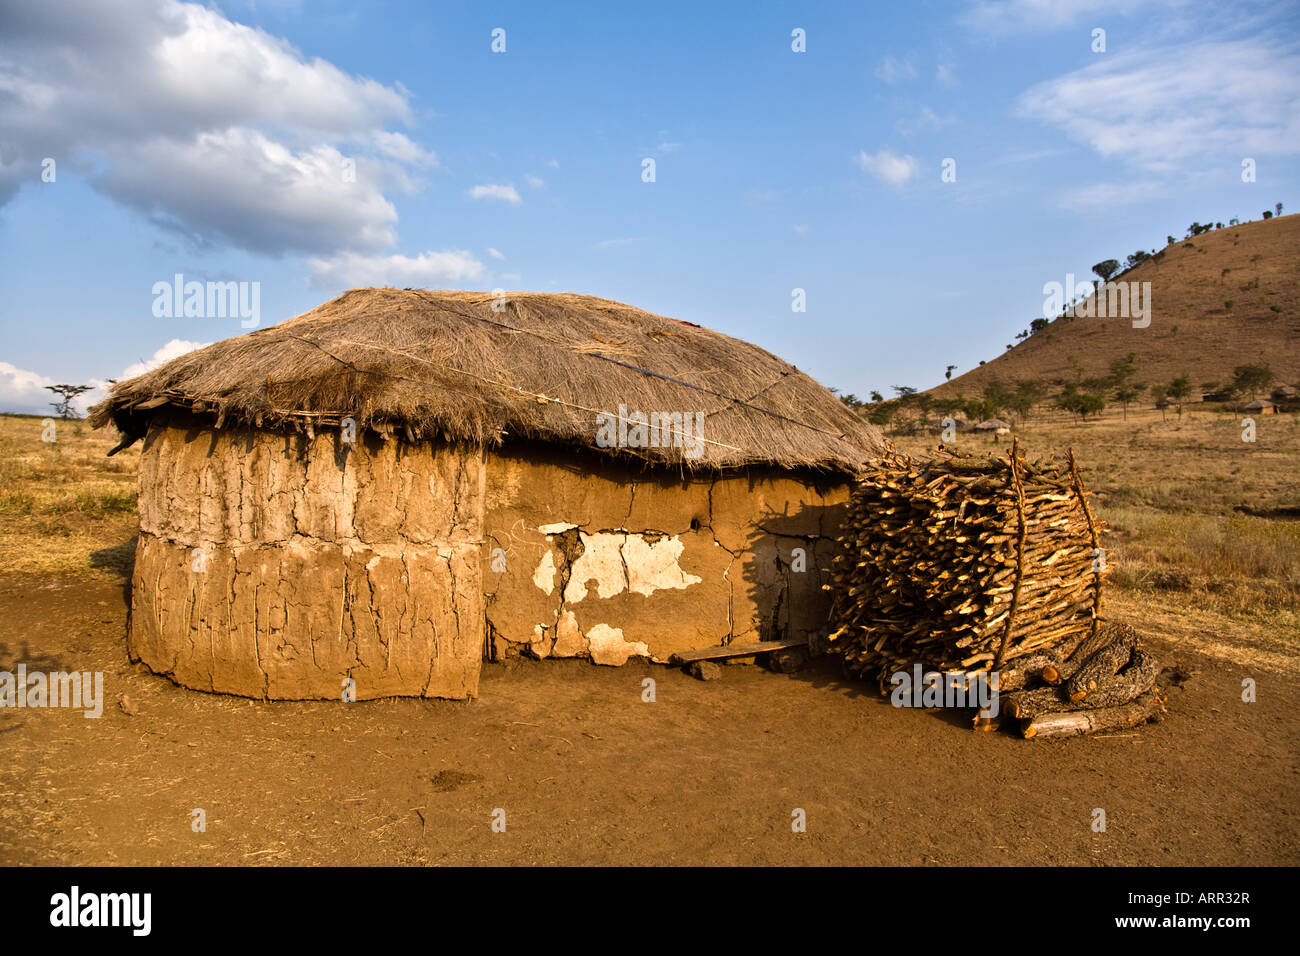 ein traditionelles maasai haus im norden von tansania stockfoto bild 16110670 alamy. Black Bedroom Furniture Sets. Home Design Ideas